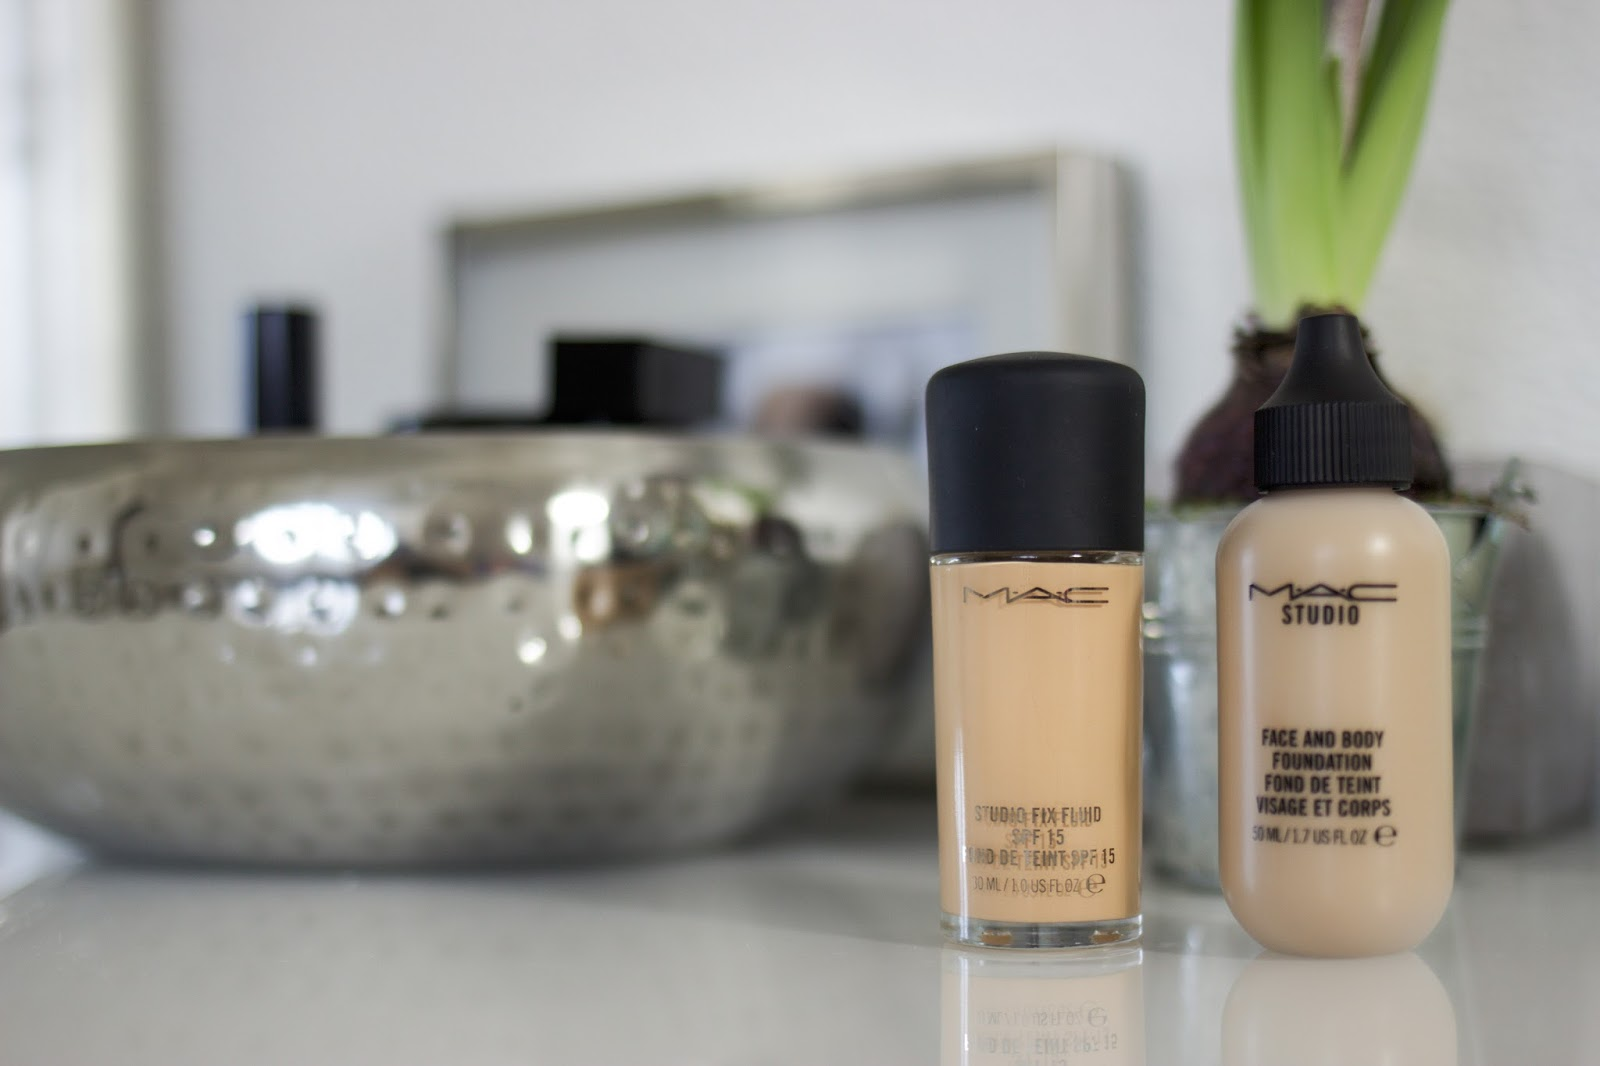 Mac cosmetics, Make Up, Studio fix fluid, Face and Body